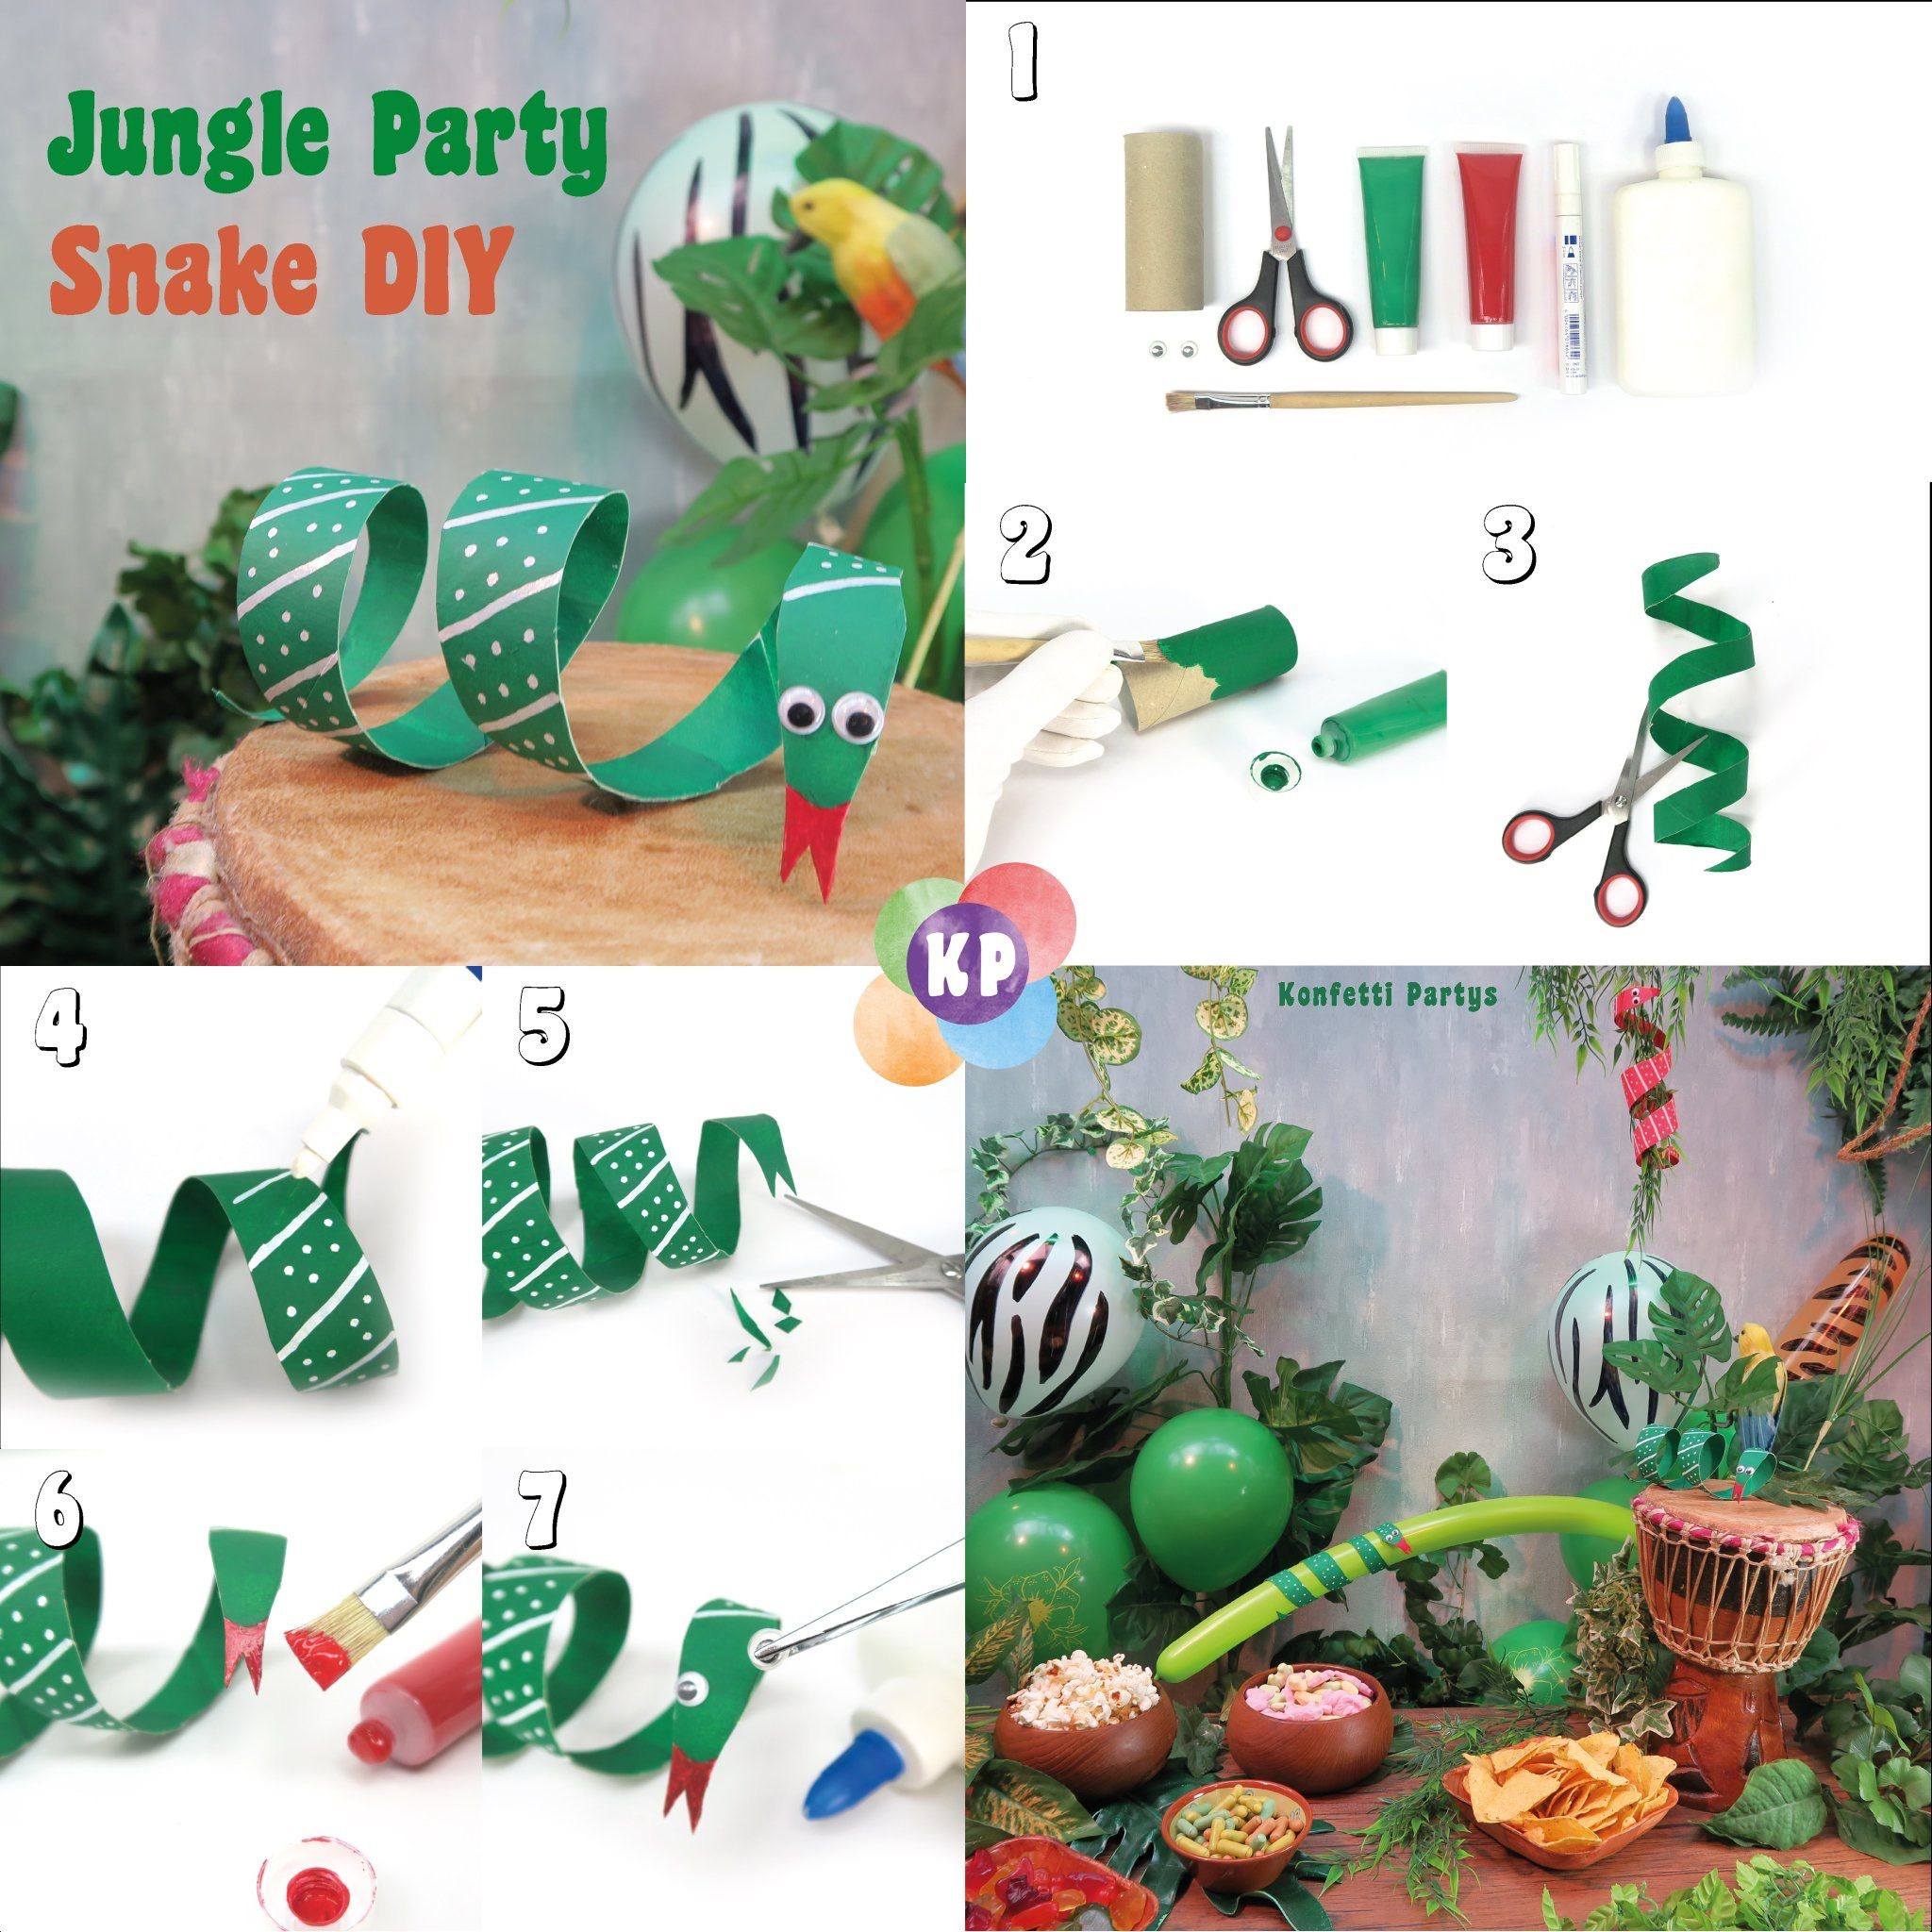 Snake Diy For Your Jungle Birthday Party Decor Jungle Partydiy